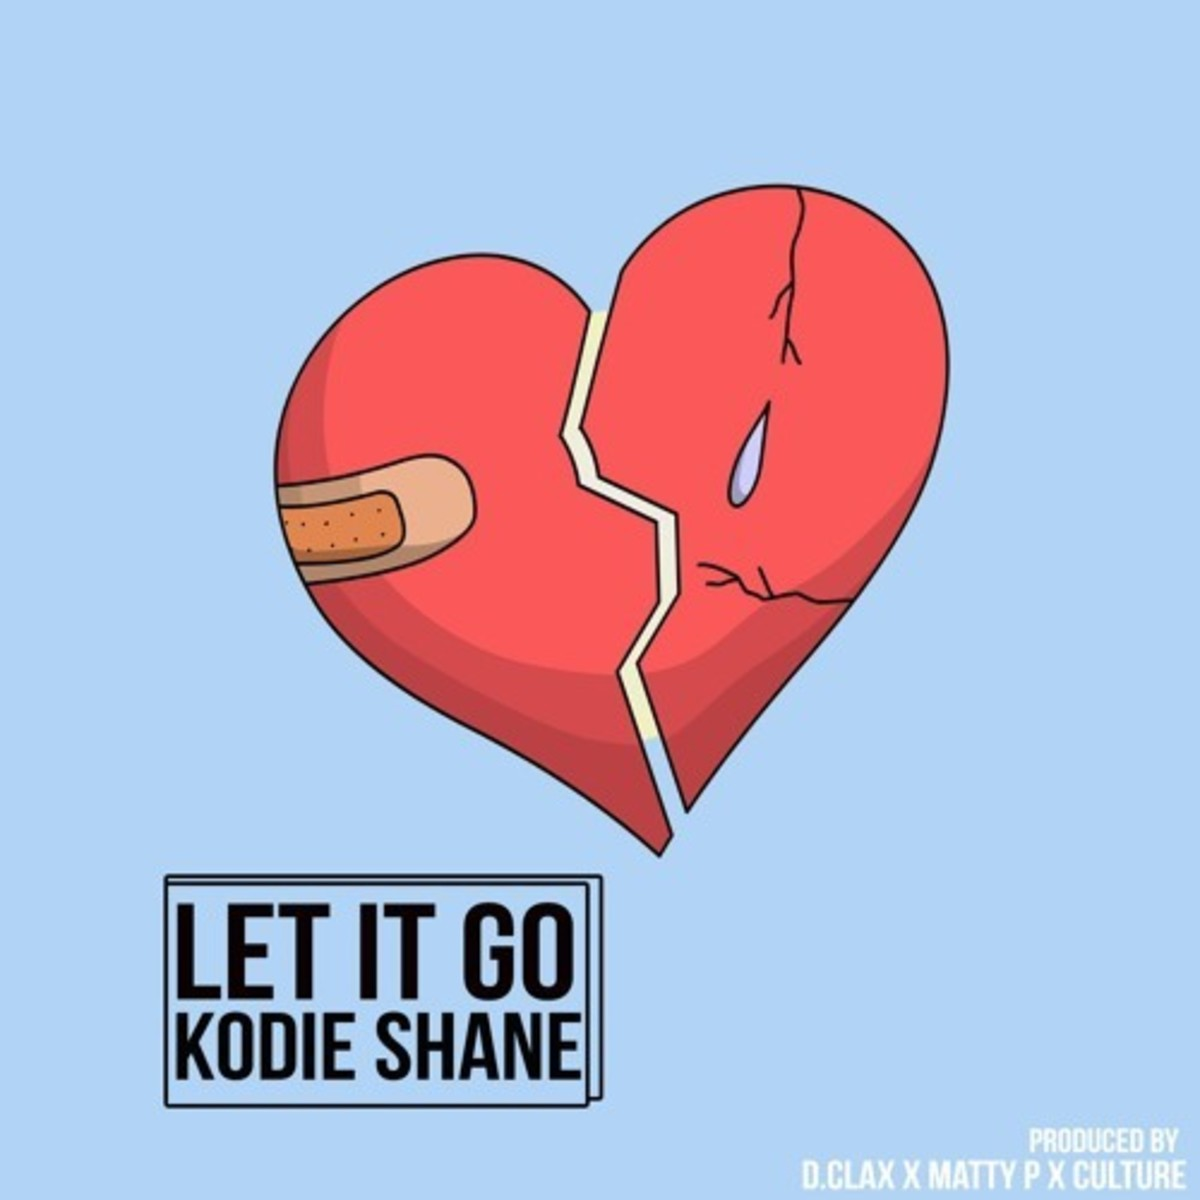 kodie-shane-let-it-go.jpg